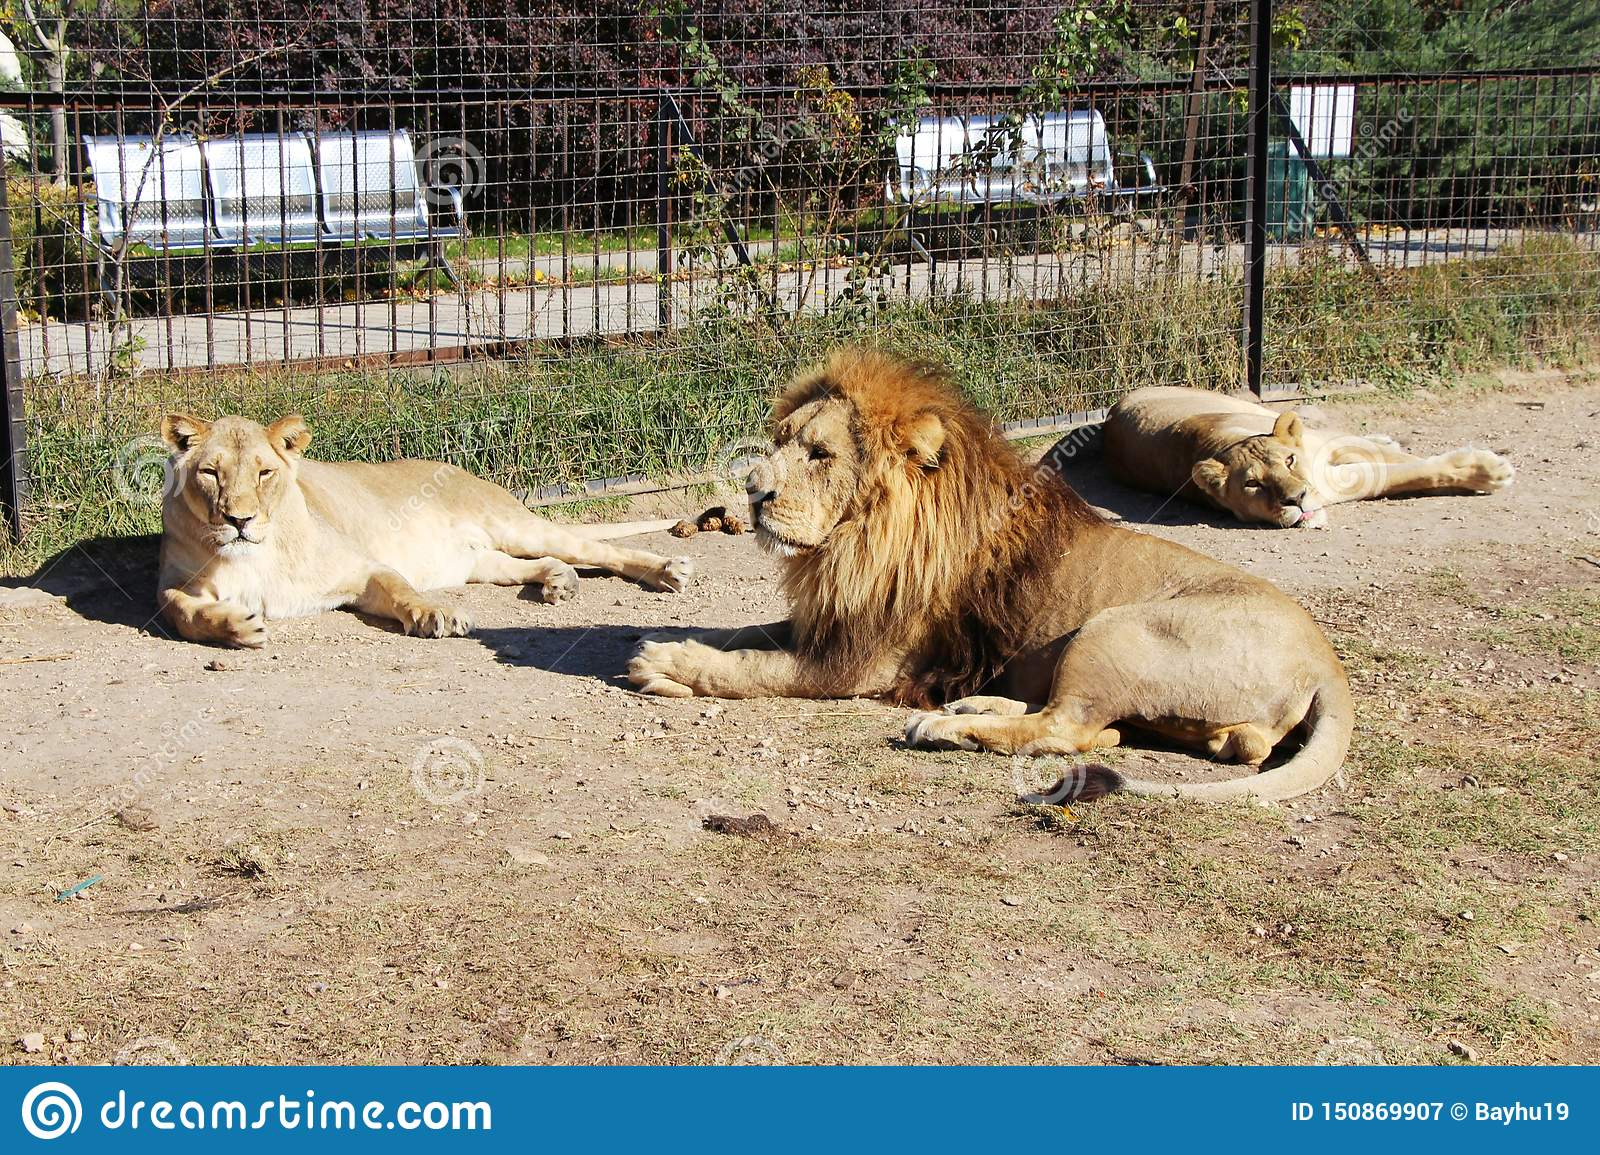 Pride of lions rests next to the bars of fence